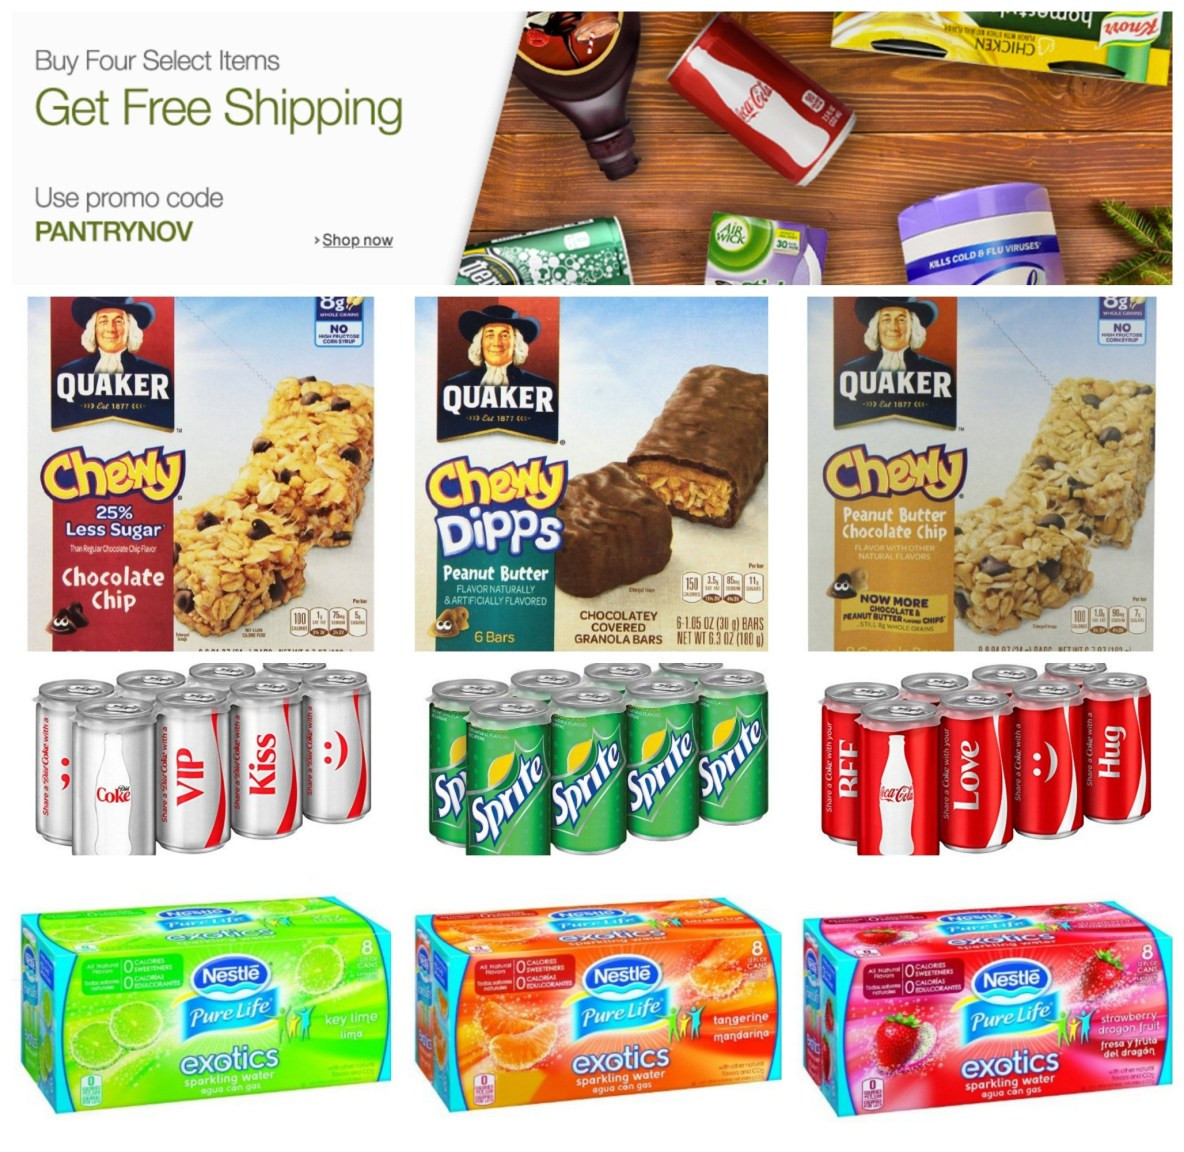 Best ideas about Prime Pantry Shipping . Save or Pin NEW Prime Pantry Coupons Buy 4 Select Items Get FREE Now.